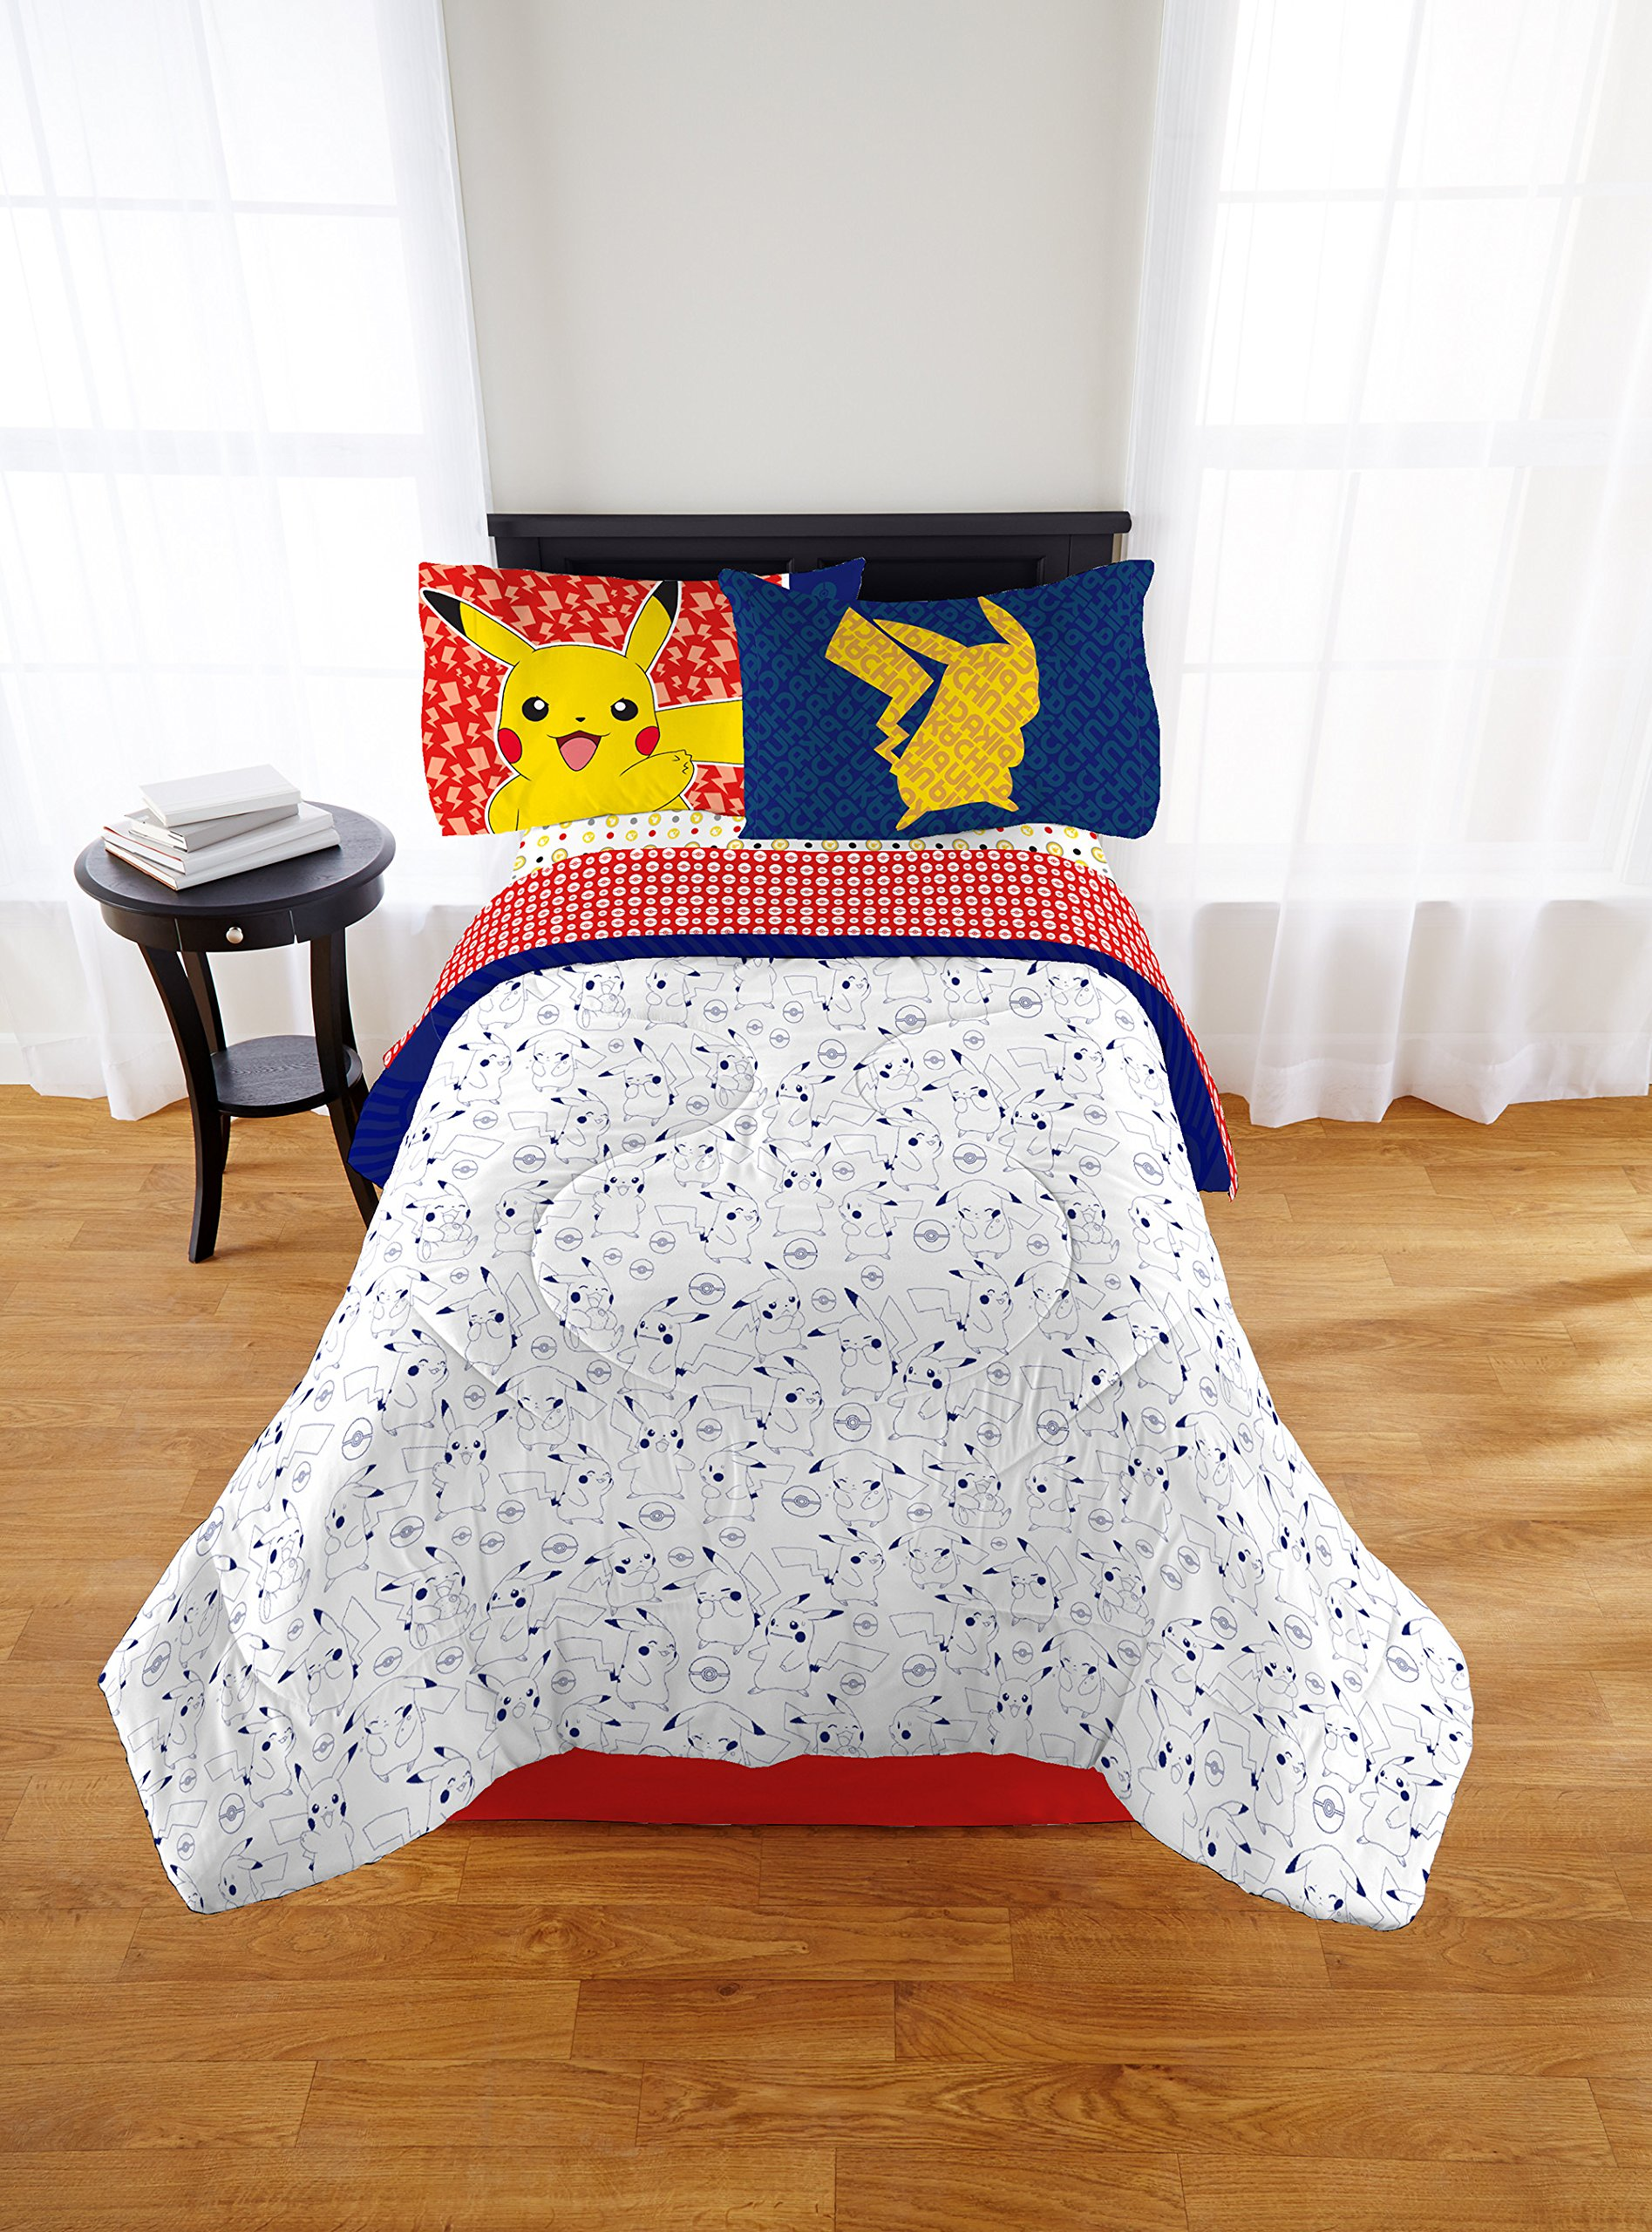 TN 3 Piece Kids Red Pokemon Sheet Set Twin, Blue All Over Pokeball Bedding Geometric Video Games Bed Sheets Animated Movies Comics Soft Cozy Yellow Gold Modern Stylish Elegant, Polyester